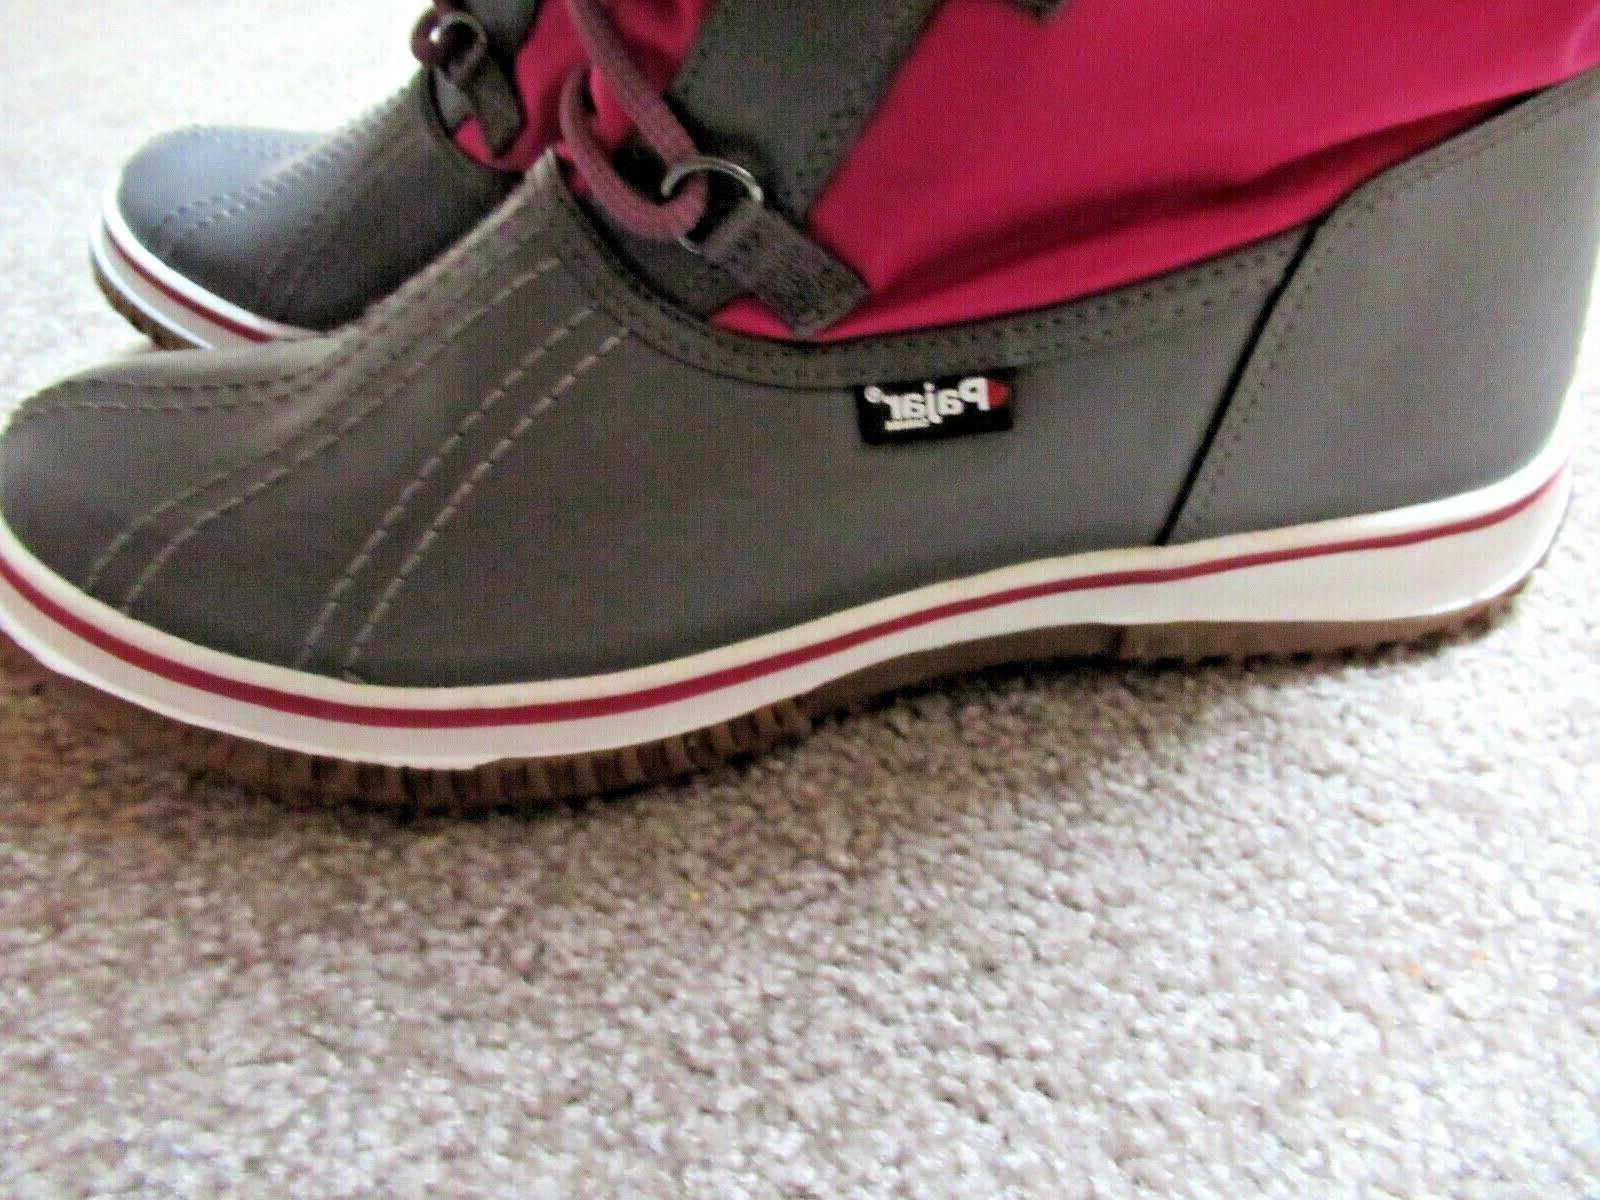 ~~PAJAR CANADA Women's Pink Debby Boots 10 NWT~Knee high